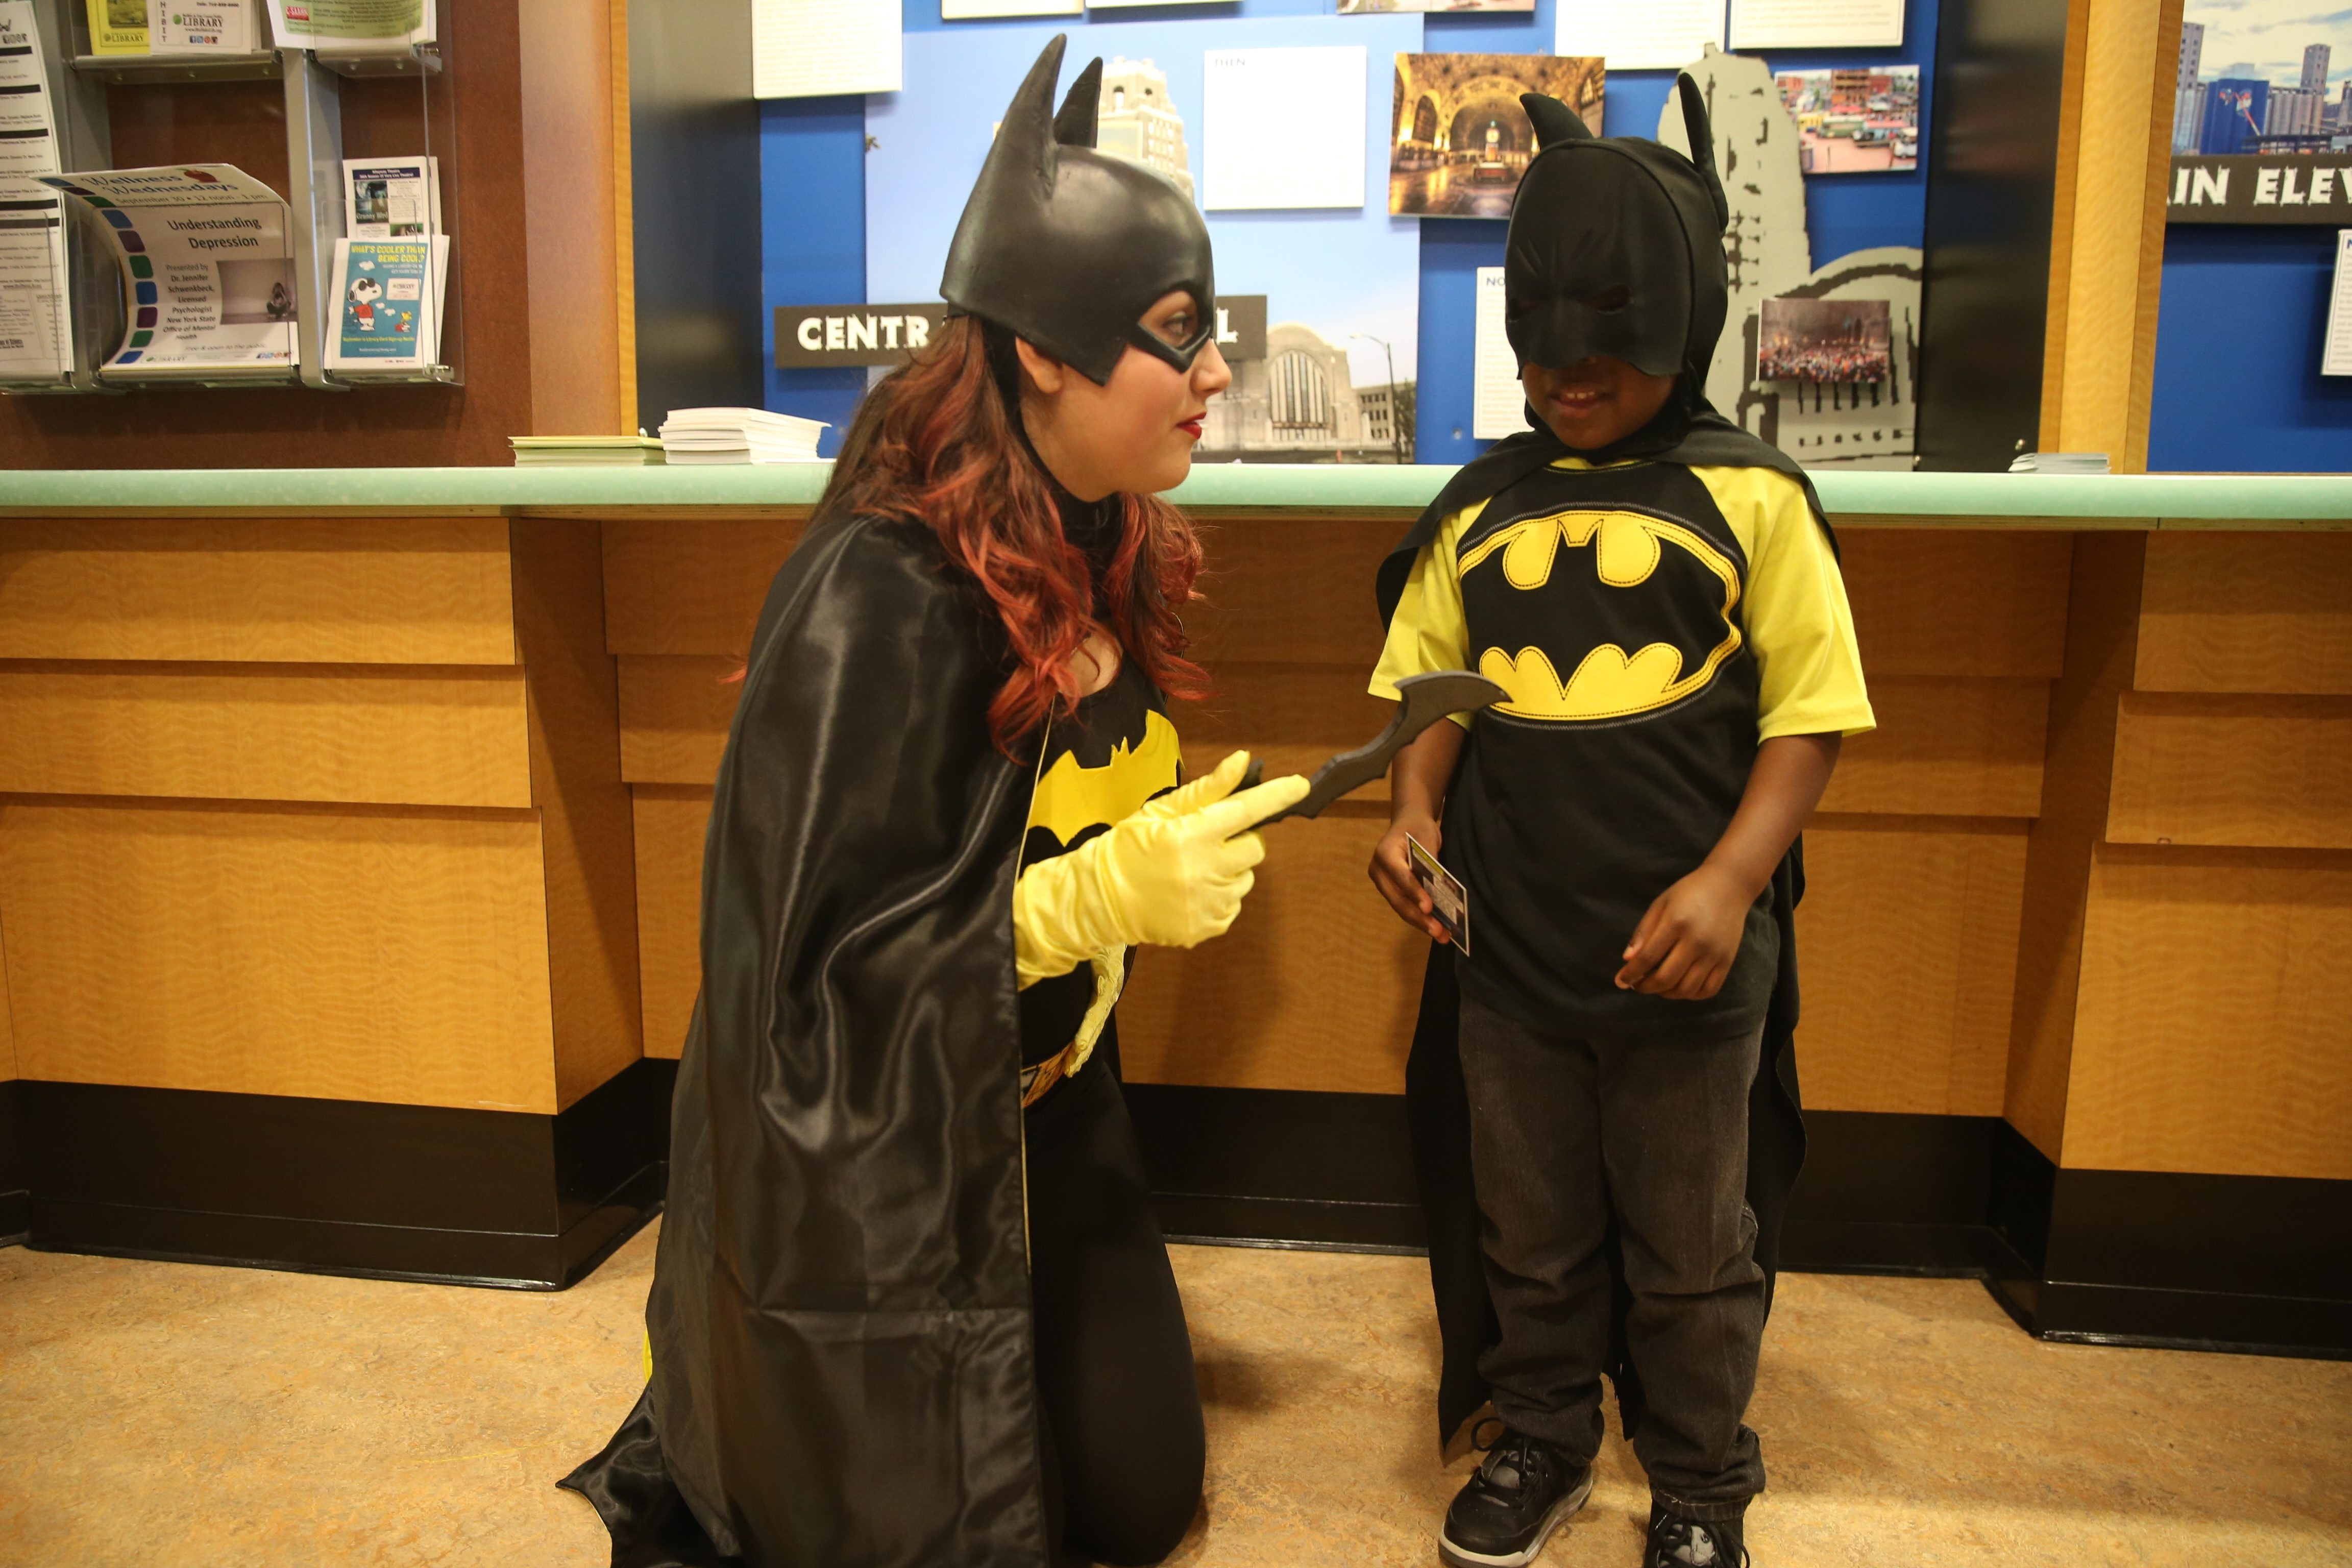 Batgirl (Lyana Macaluso) talks with a young Batman (Quince Foster, 4) at Batman Day, an event aimed at fighting bullying, held Saturday at the Buffalo & Erie County Central Library, in Buffalo.     John Hickey/Buffalo News